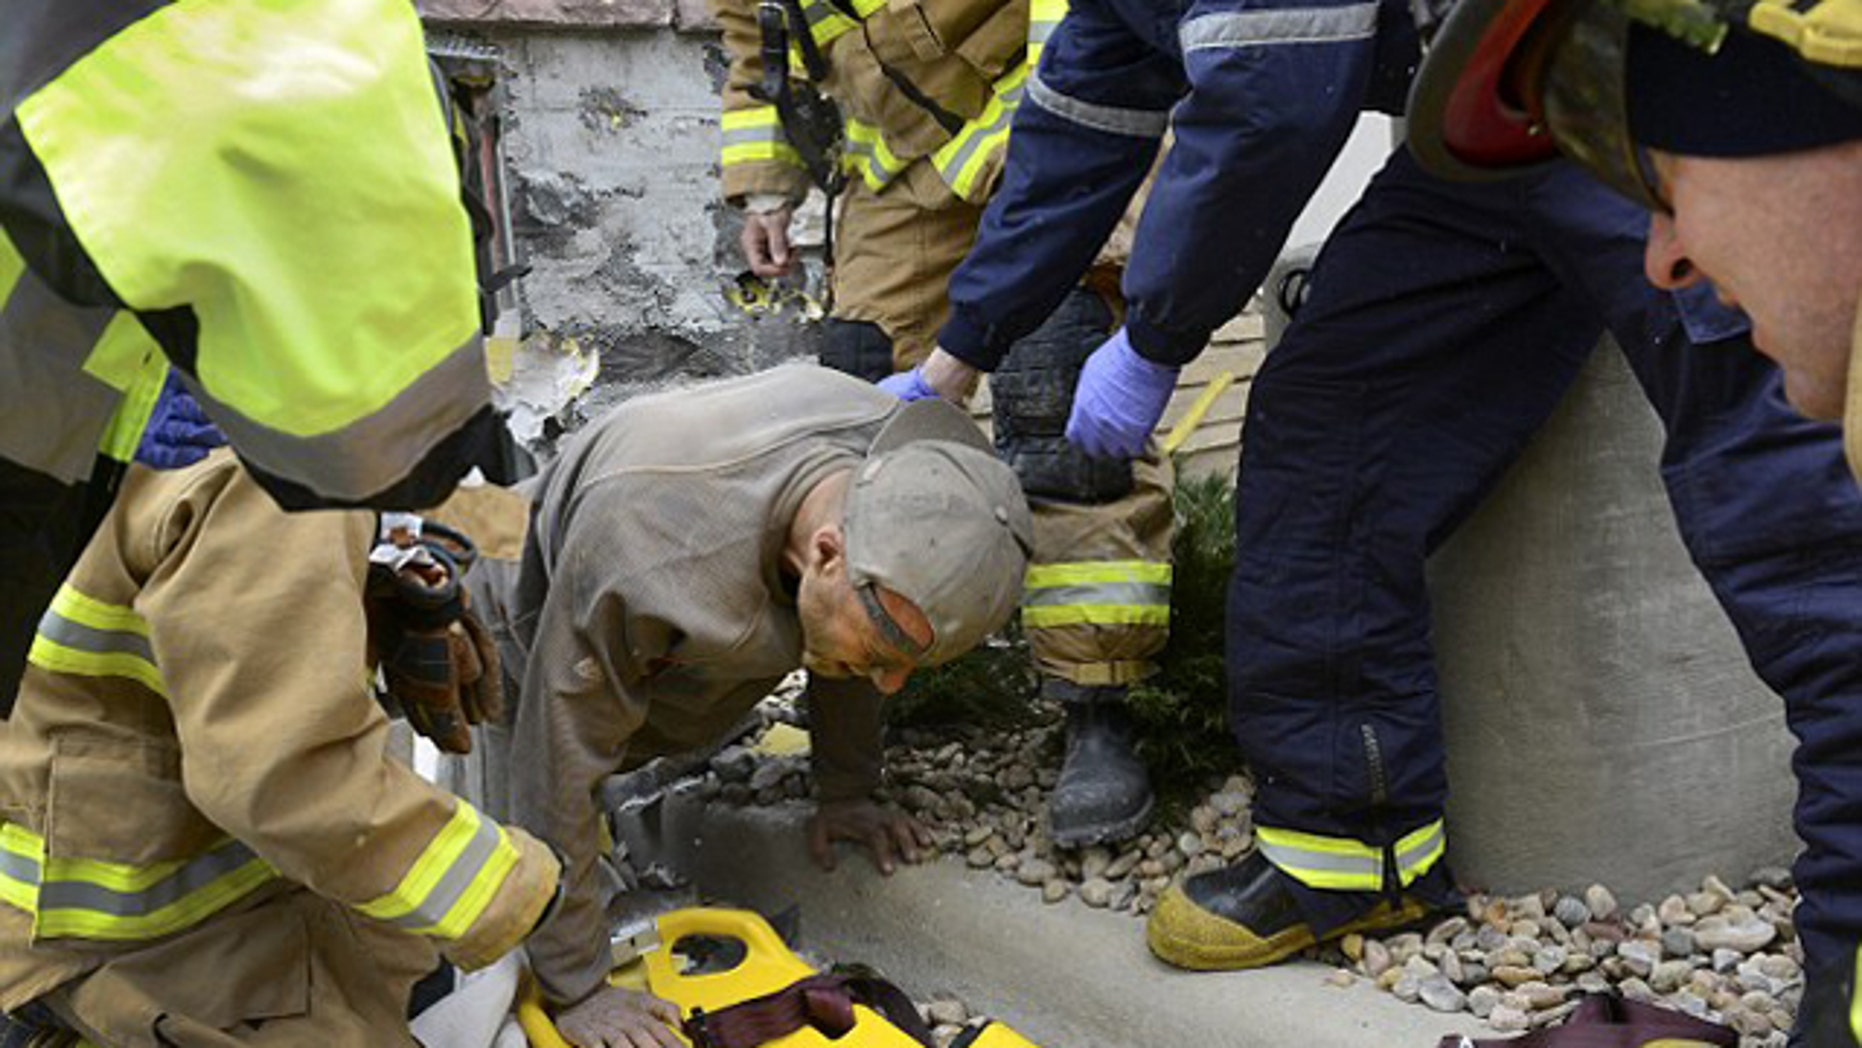 November 11, 2014: A man trapped in a wall at the rear of a Marshalls store in Longmont, Colo., crawls out of a hole and onto a backboard. Longmont Police Sgt. Matt Cage said Paul Felyk, 35, was taken to Longmont United Hospital after falling about 20 feet inside the walls and becoming trapped. (AP Photo/The Daily Times Call, Lewis Geyer)